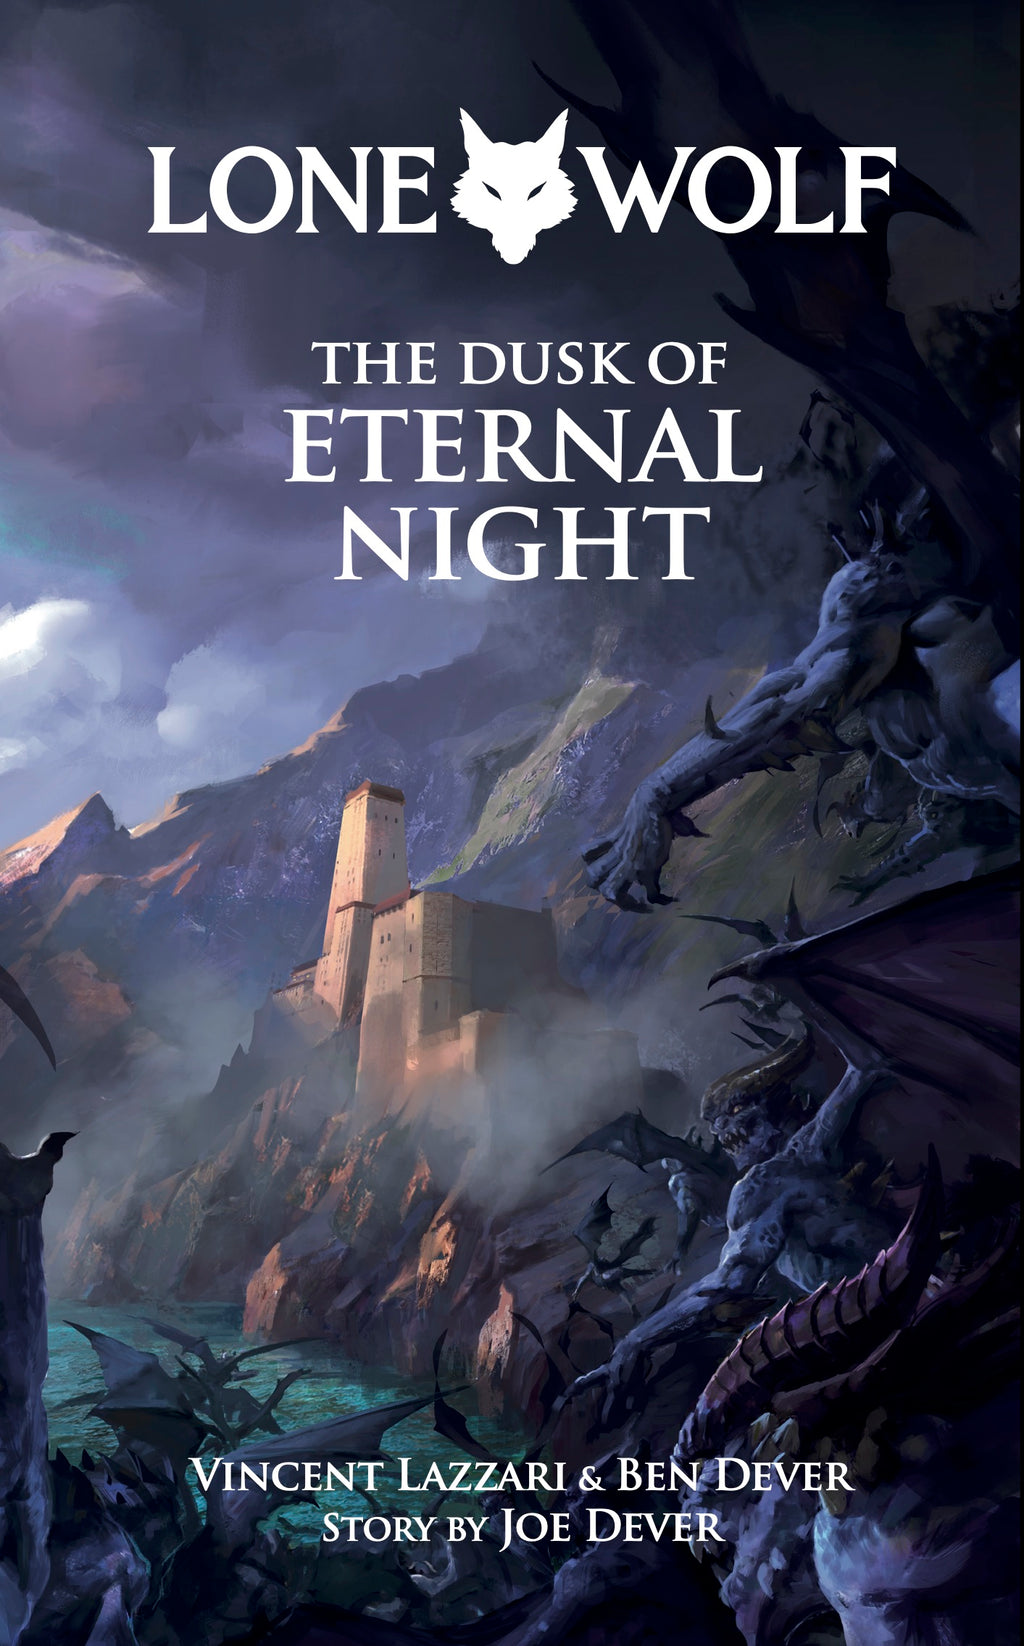 The Dusk of Eternal Night - #31 First Edition